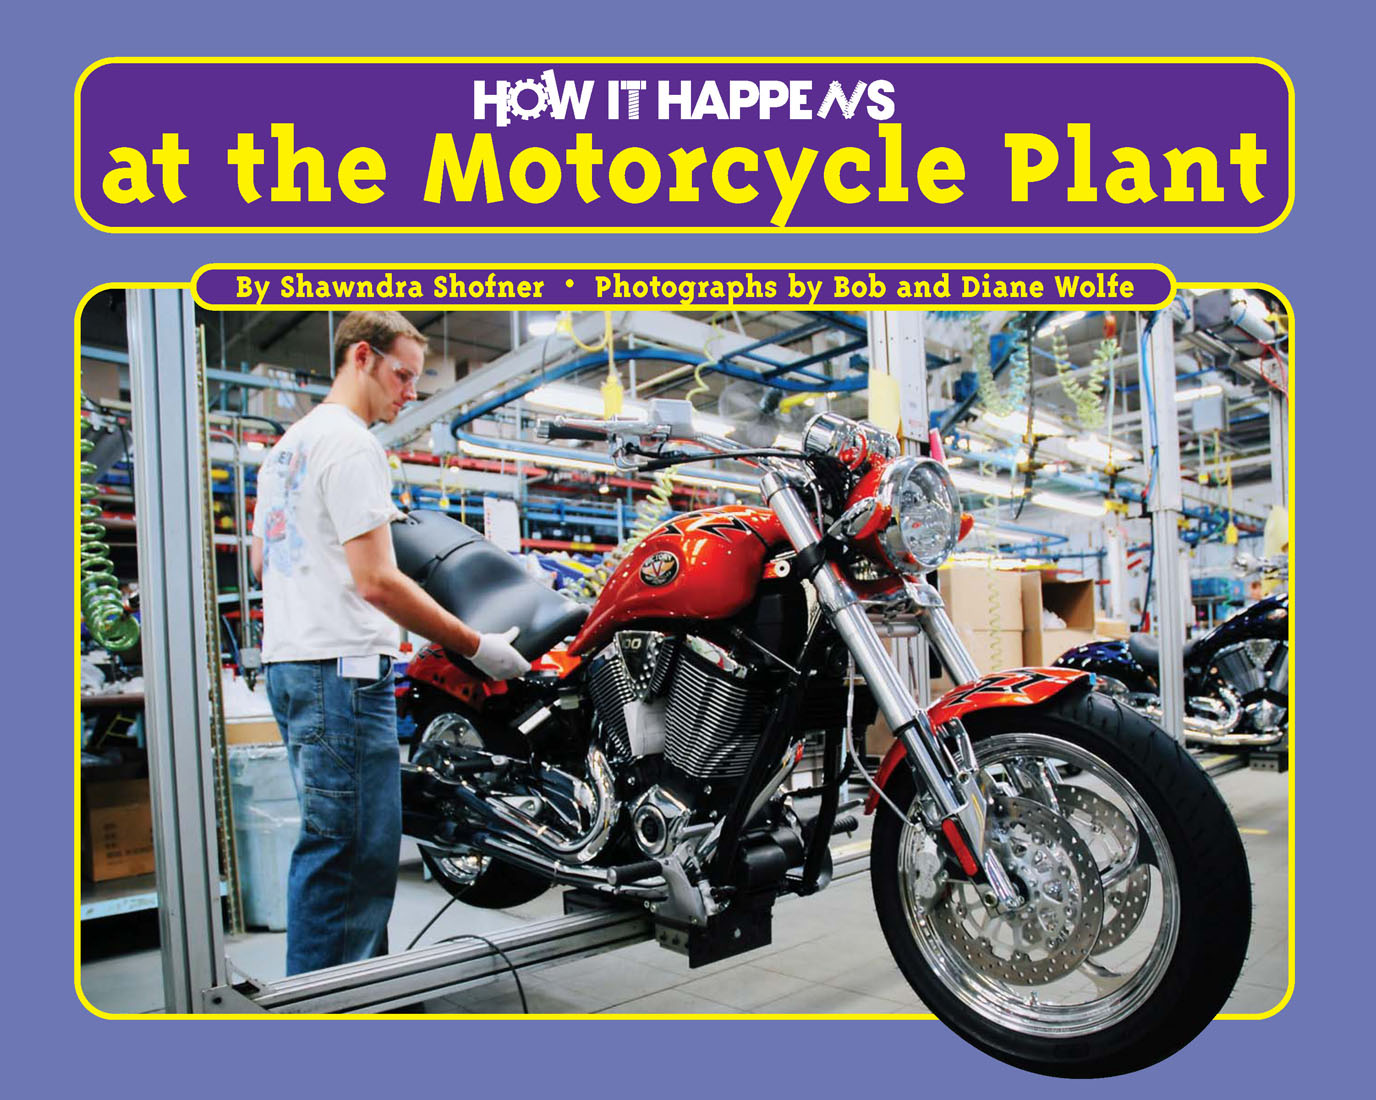 How it Happens at the Motorcycle Plant By Shawndra Shofner